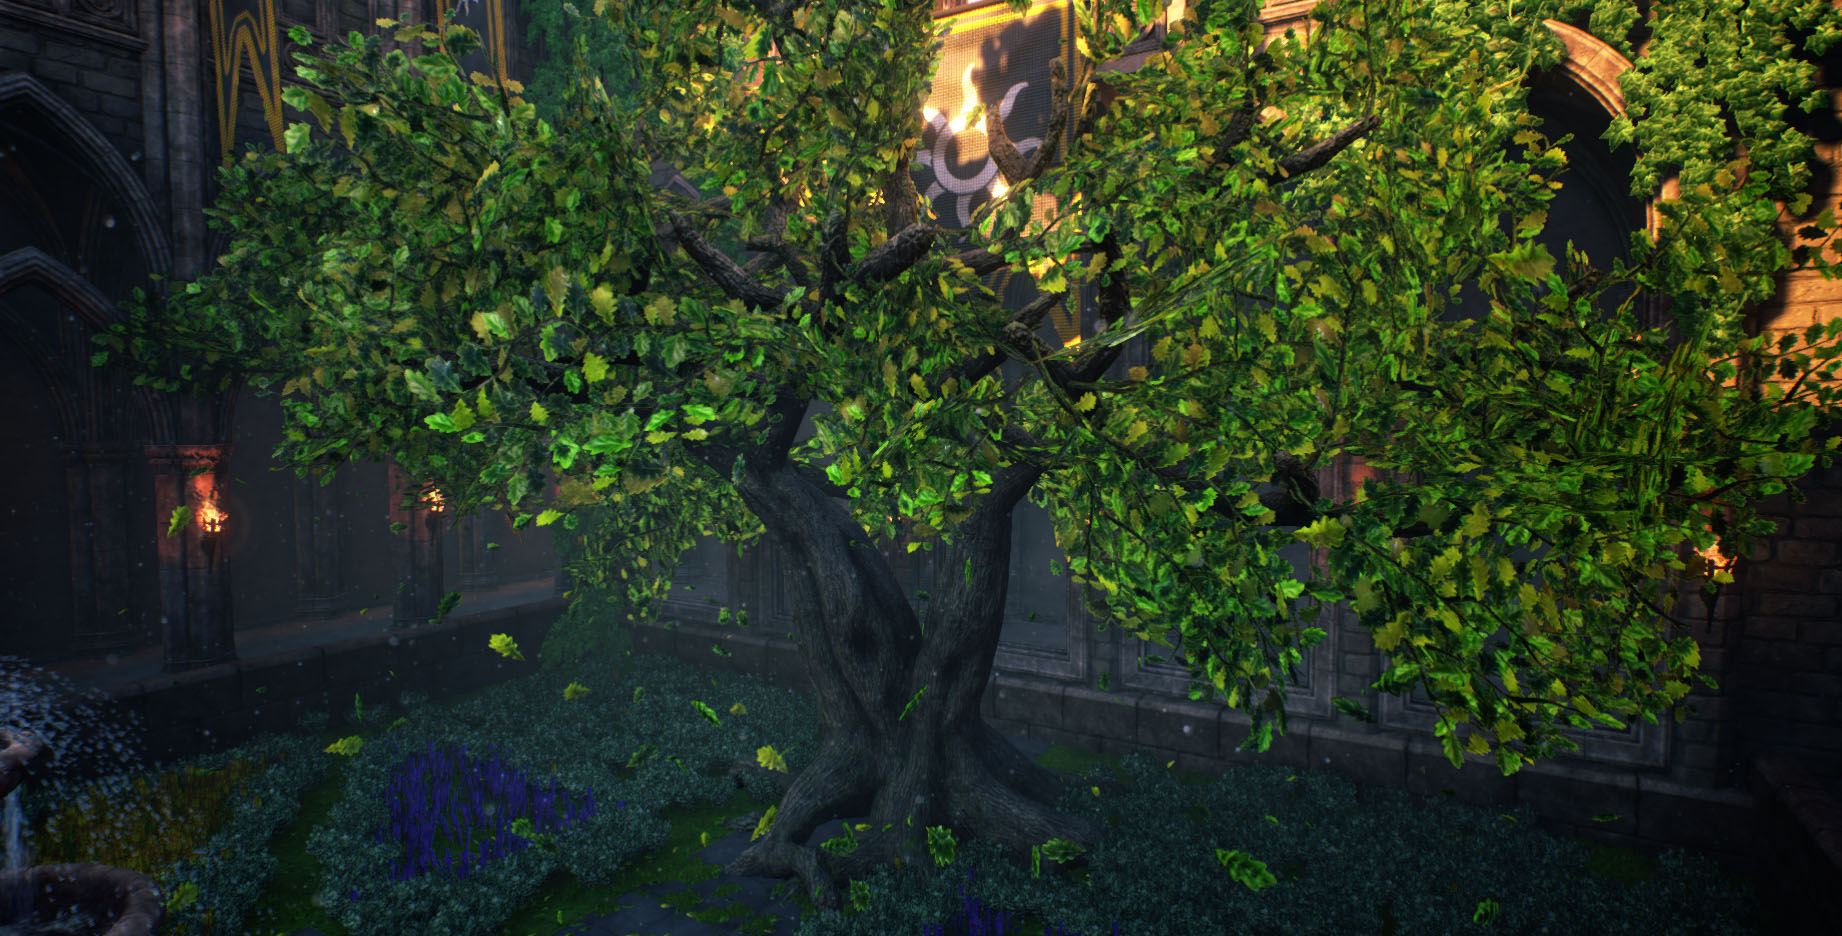 courtyard_wip11_tree.jpg